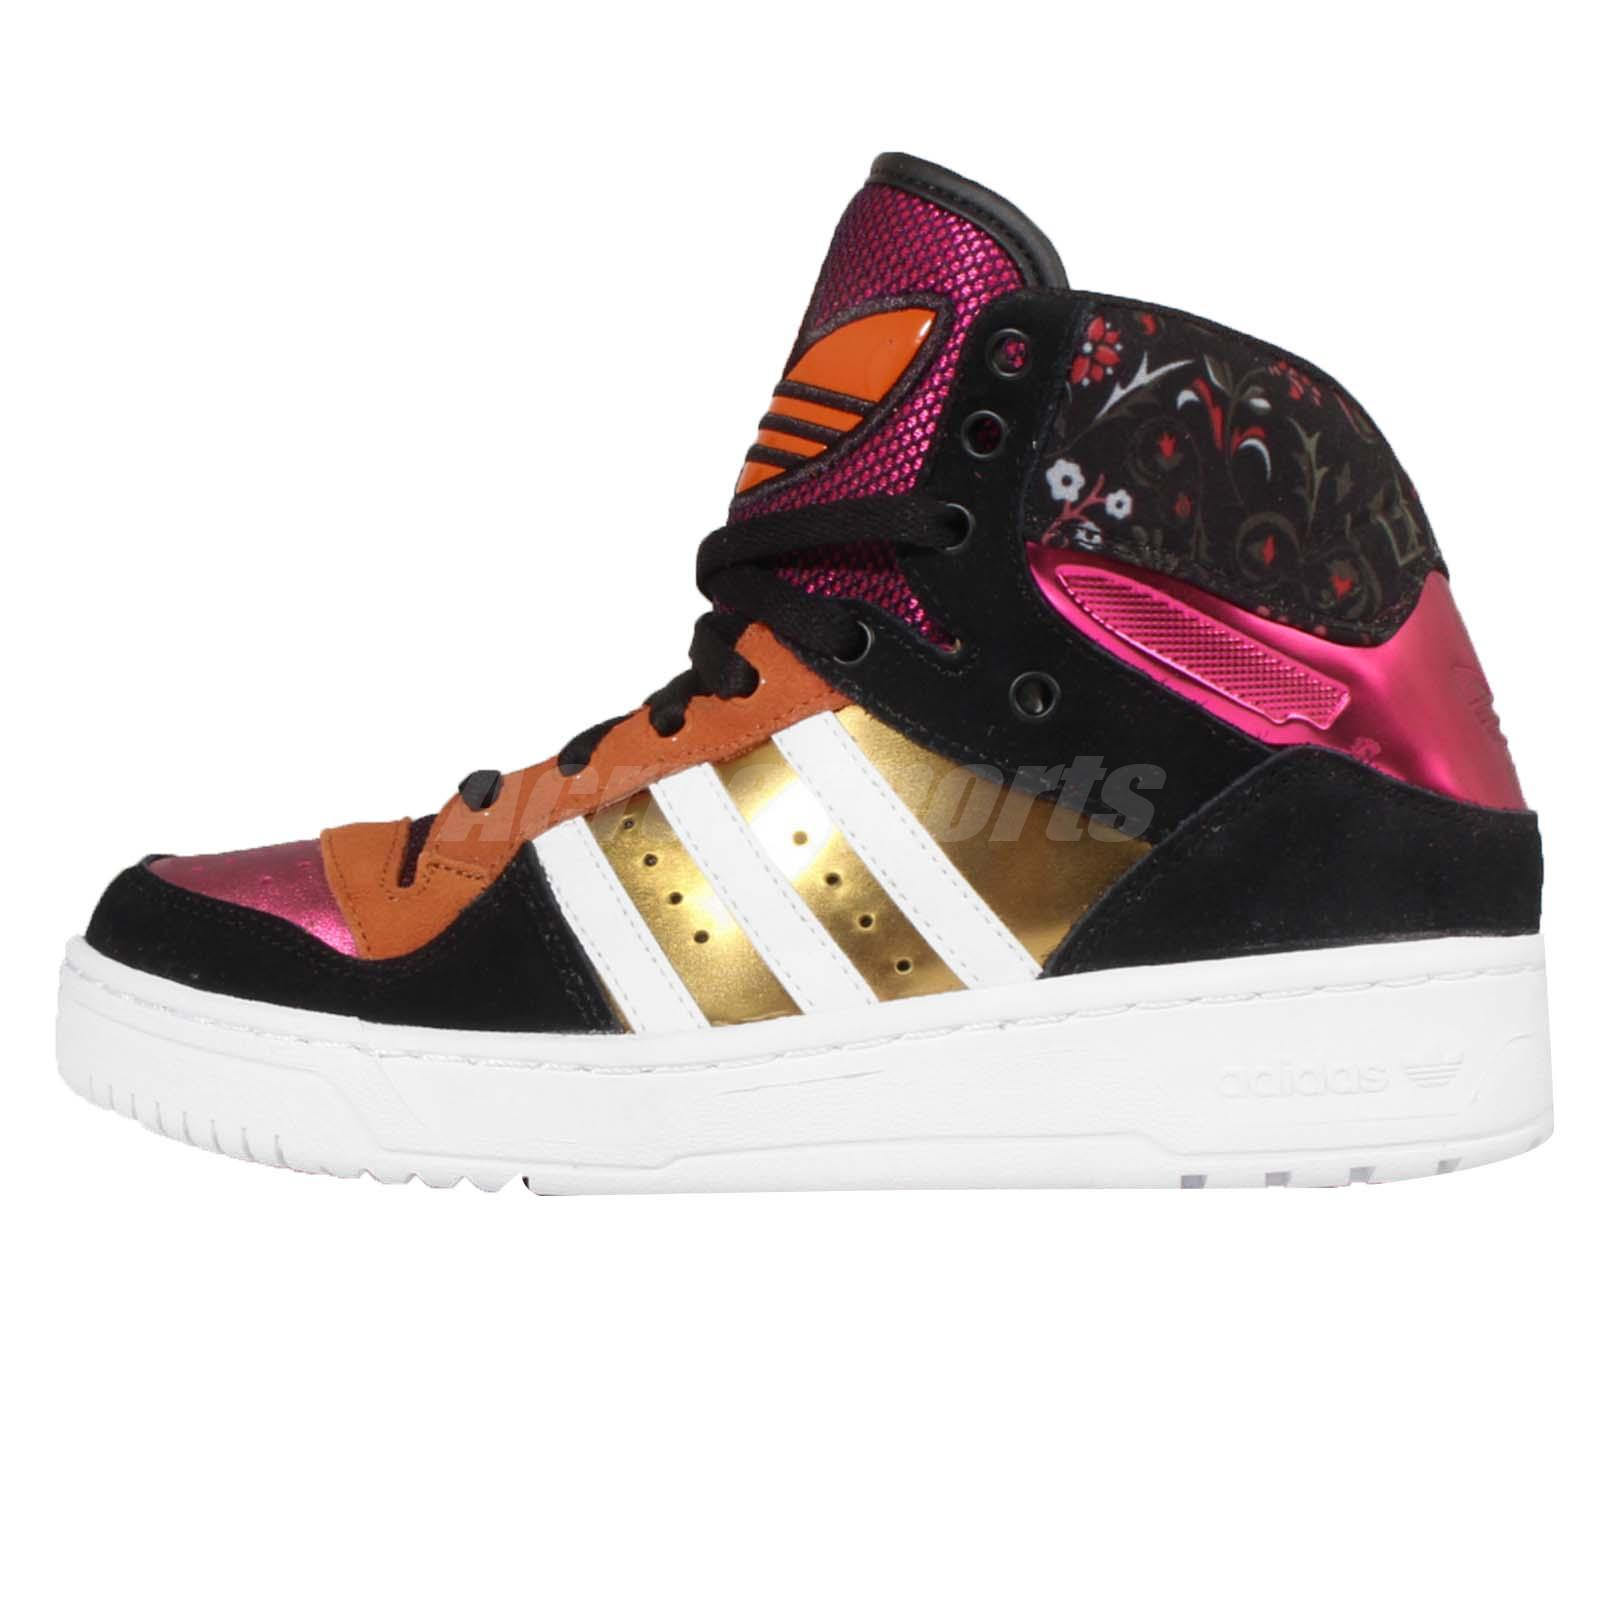 Adidas Rose Flower Shoes